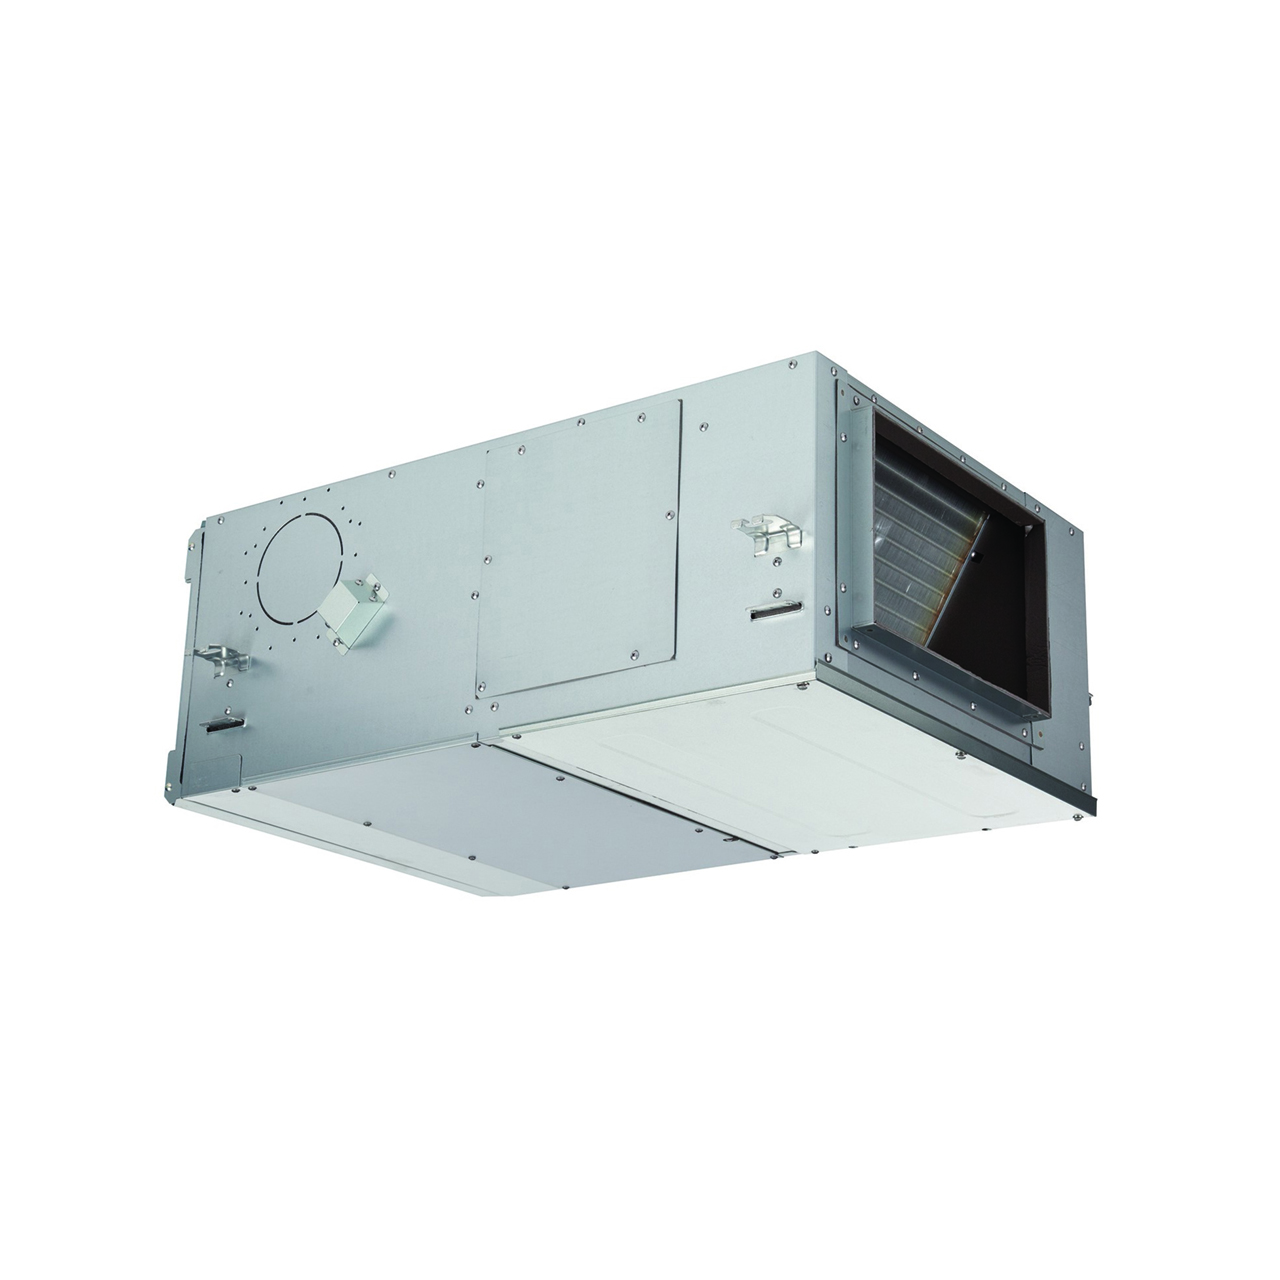 carrier-mmdb-vrf-consealed-duct-indoor-unit